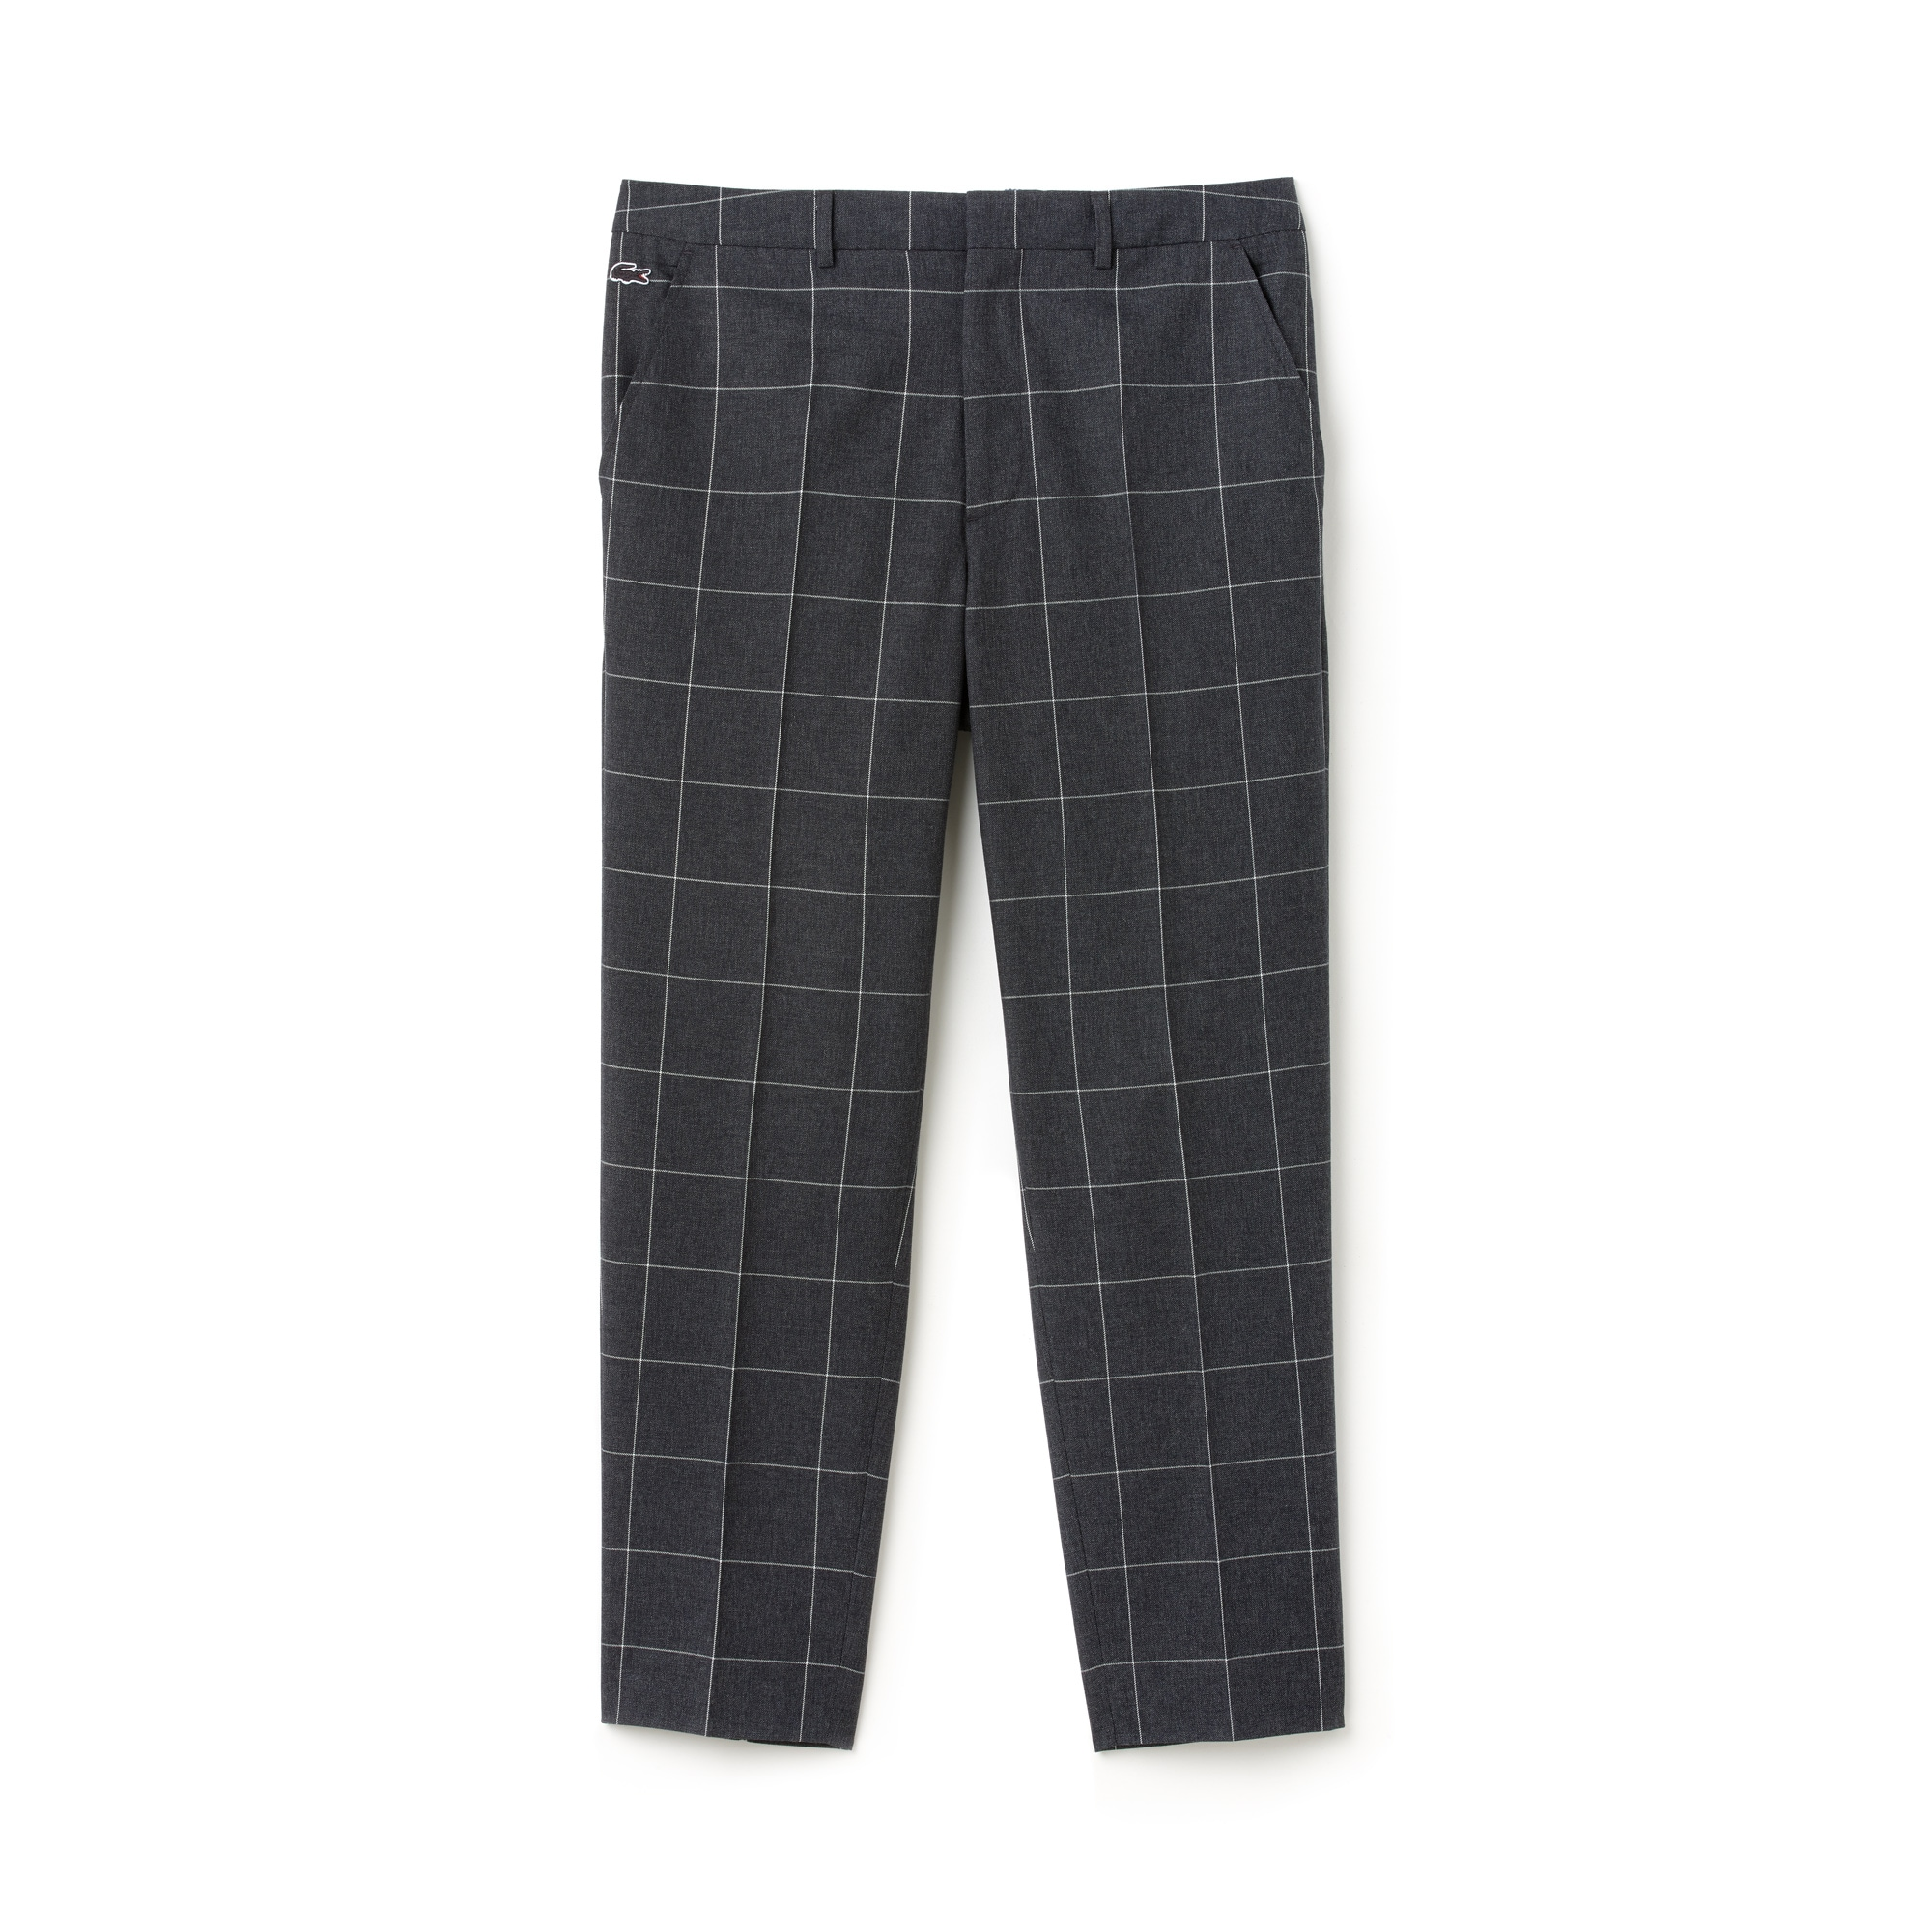 Men's LIVE Check Flannel Chino Pants